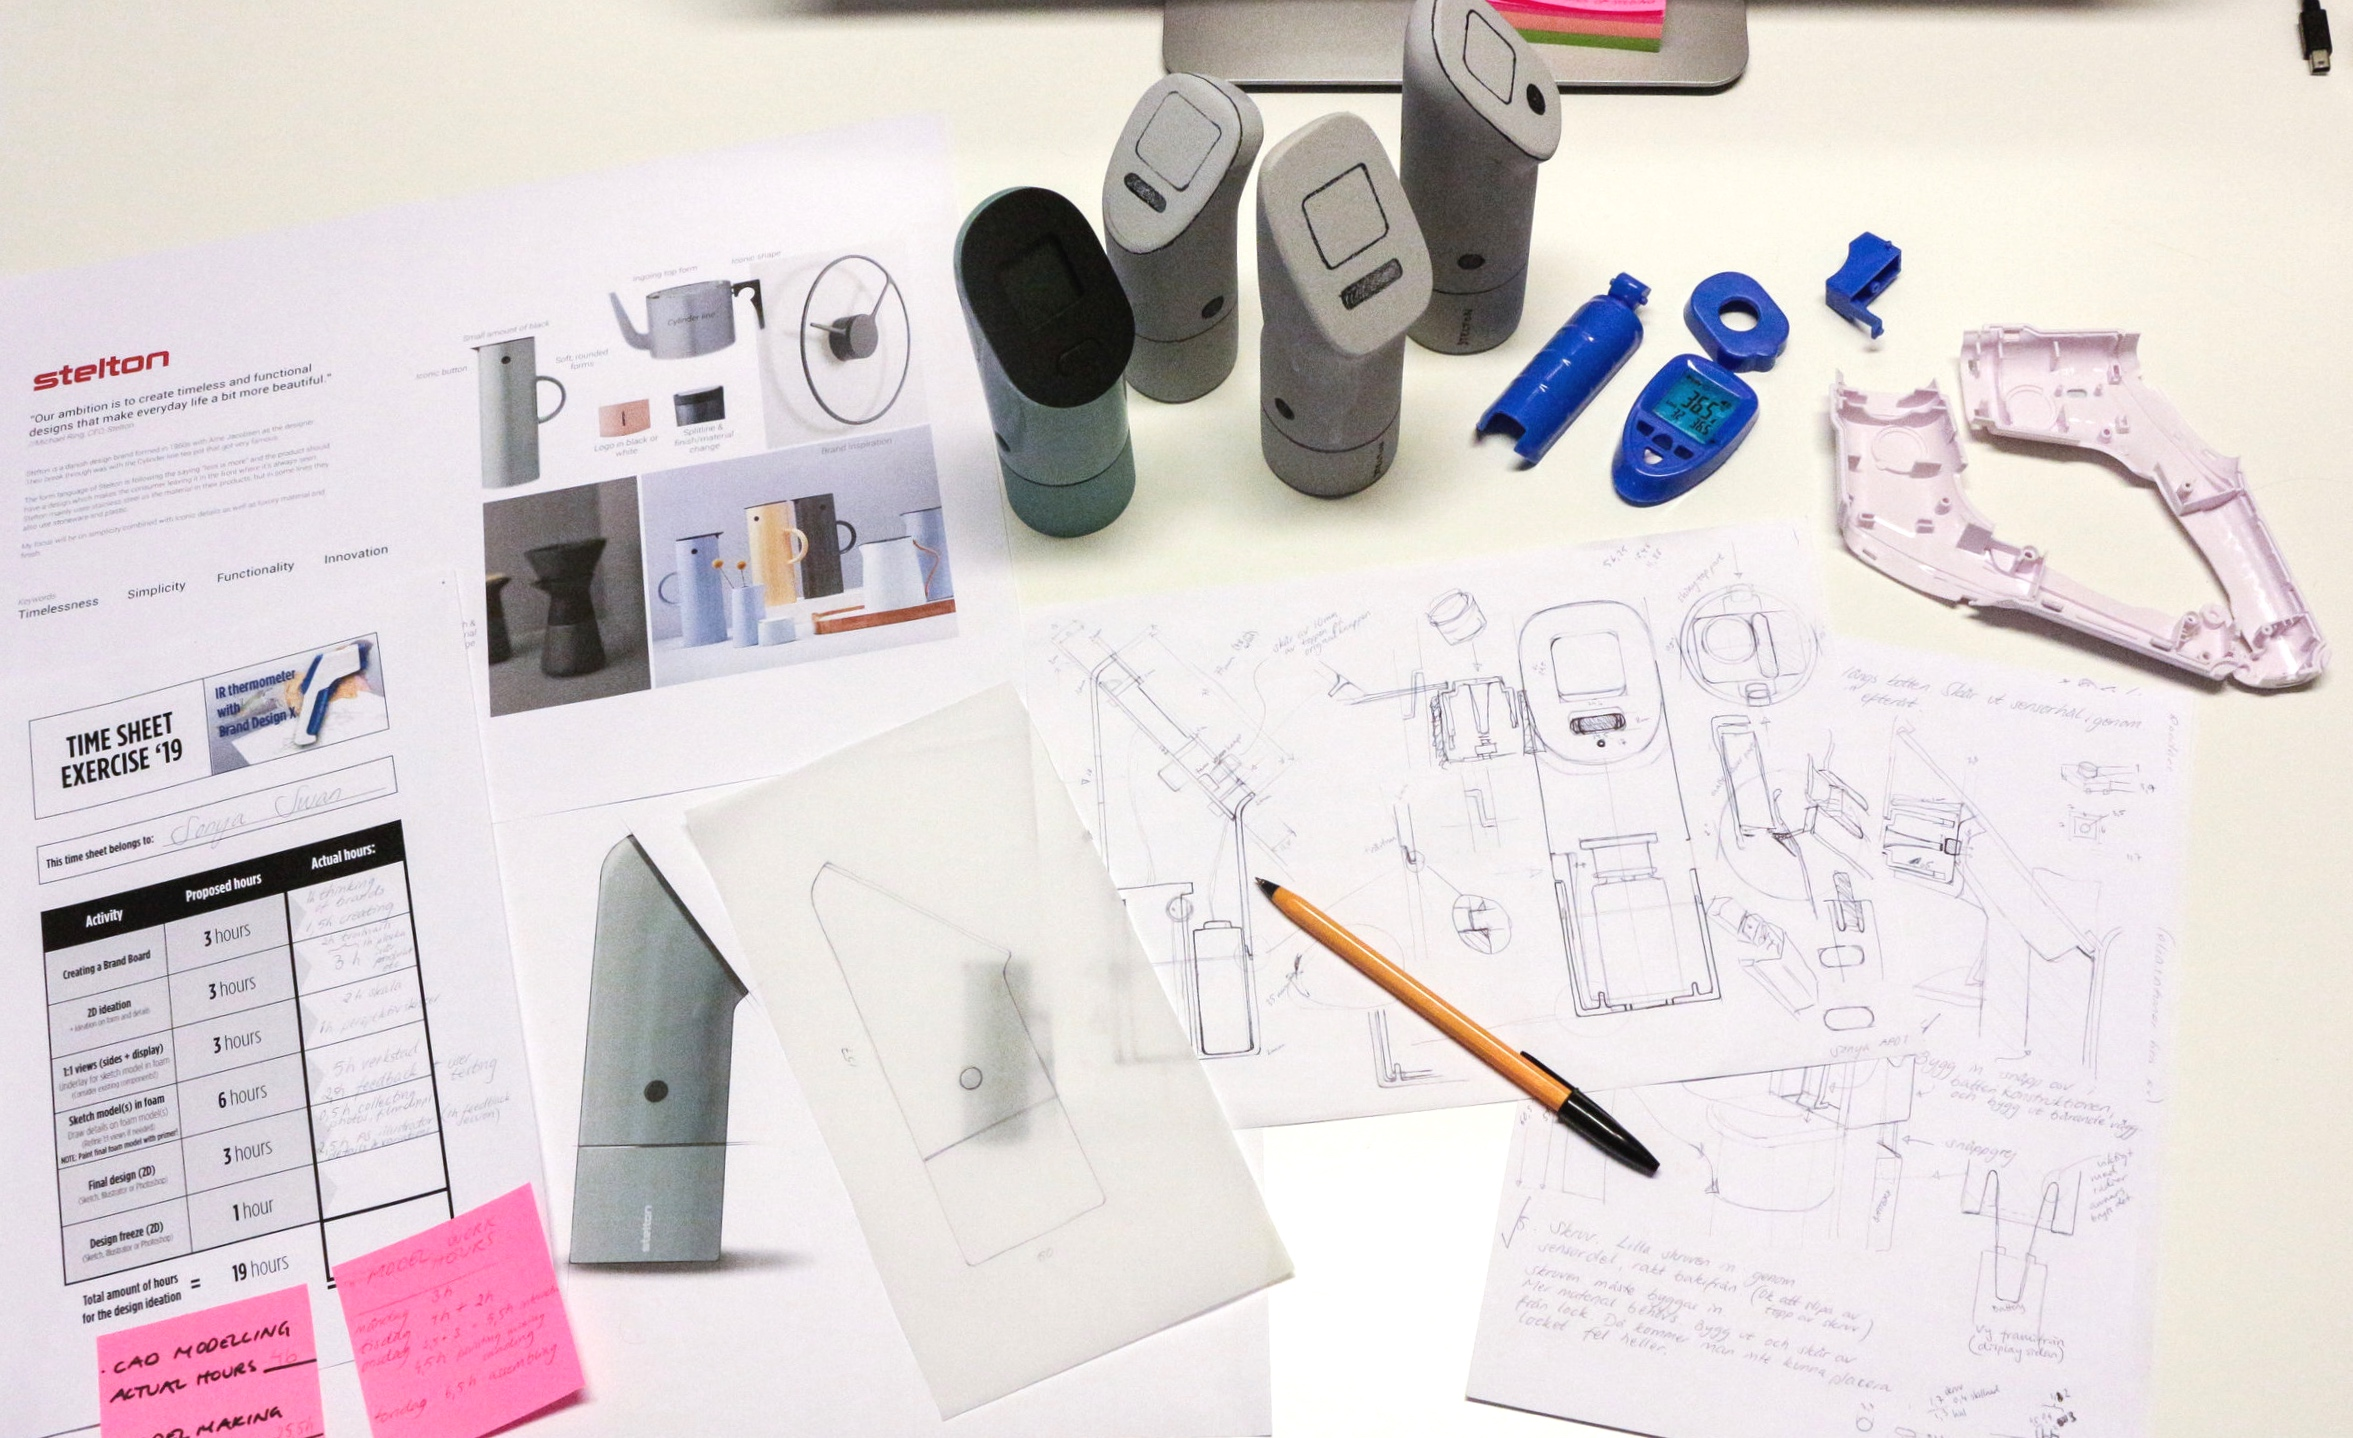 An overview of my work - From an existing product, through mock-ups and sketches to a working prototype.The messy 1:1 sketches to the right on the picture were the underlays to my CAD and modeling work - a lot to consider.